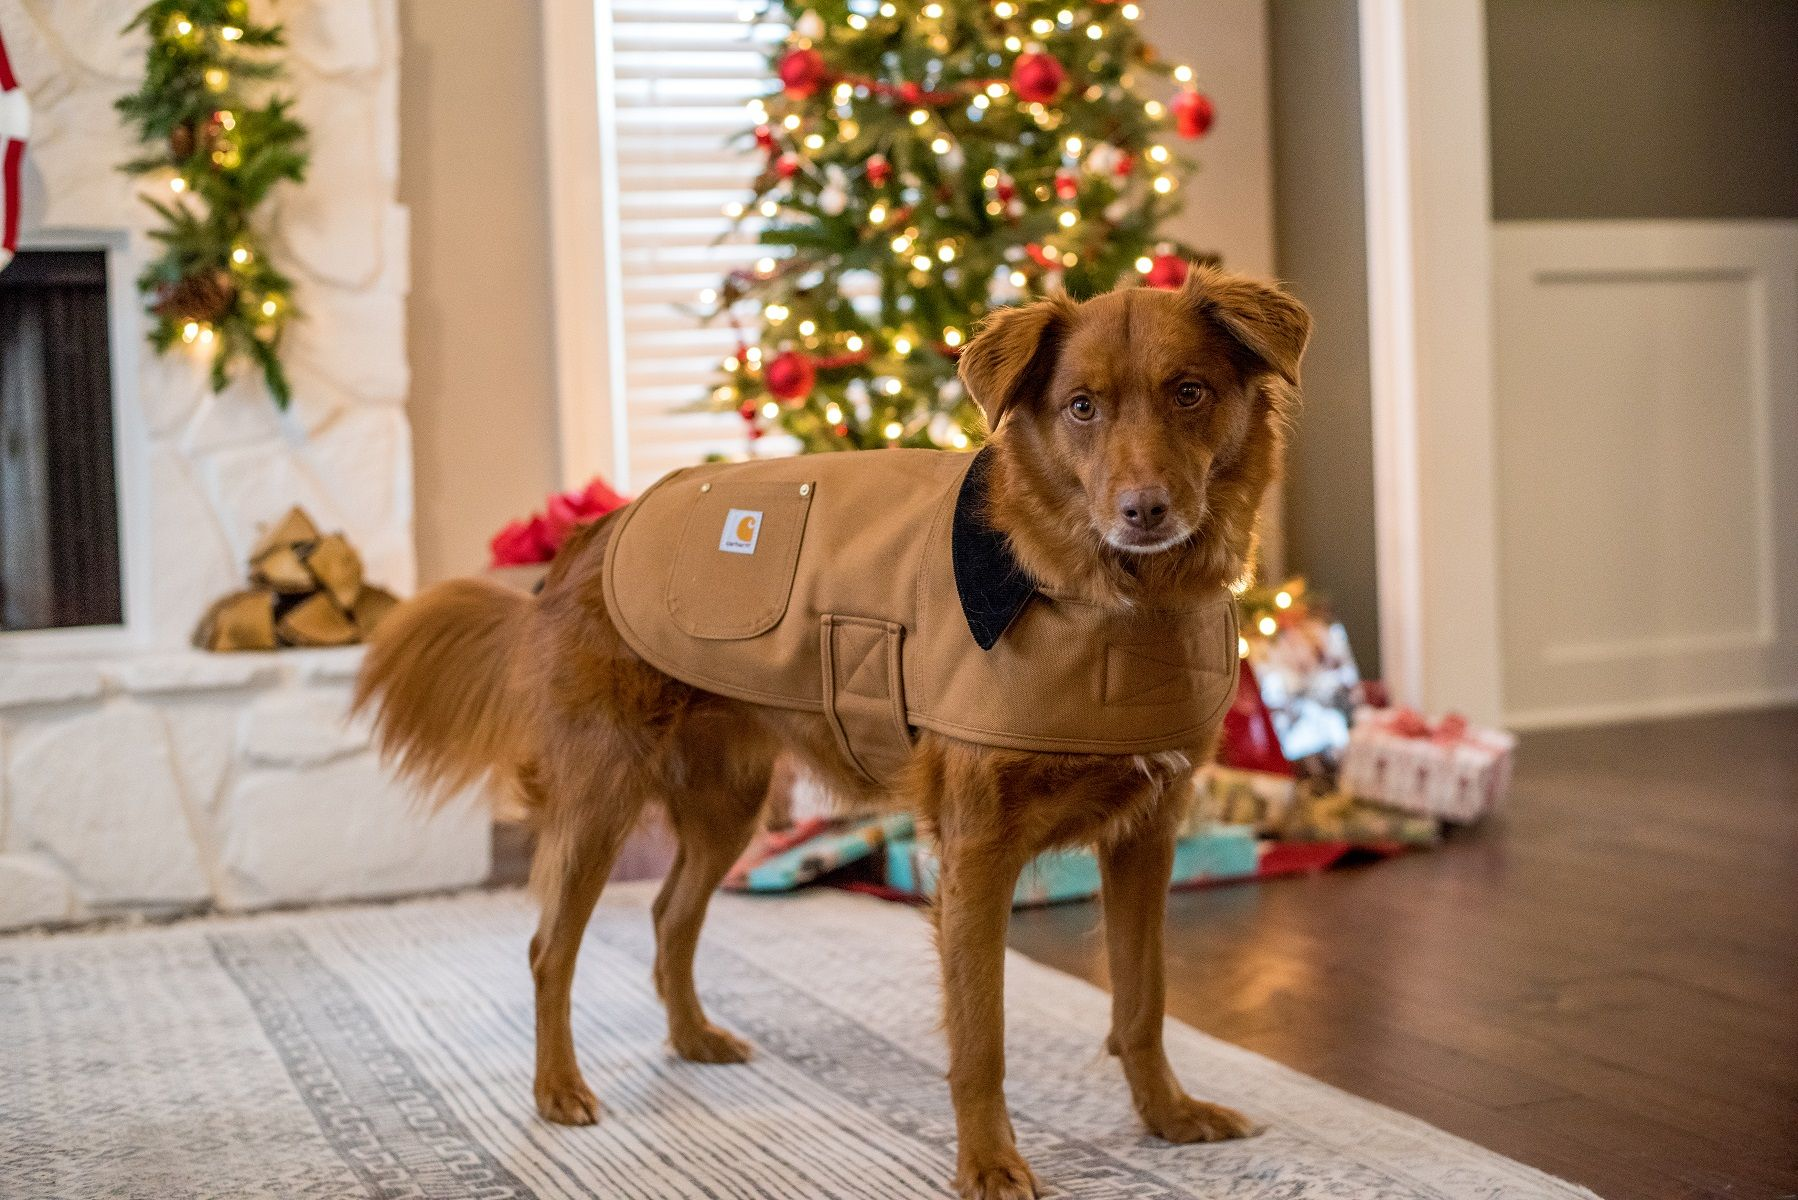 Carhartt dog bed. Chet can be like Jim! (With images